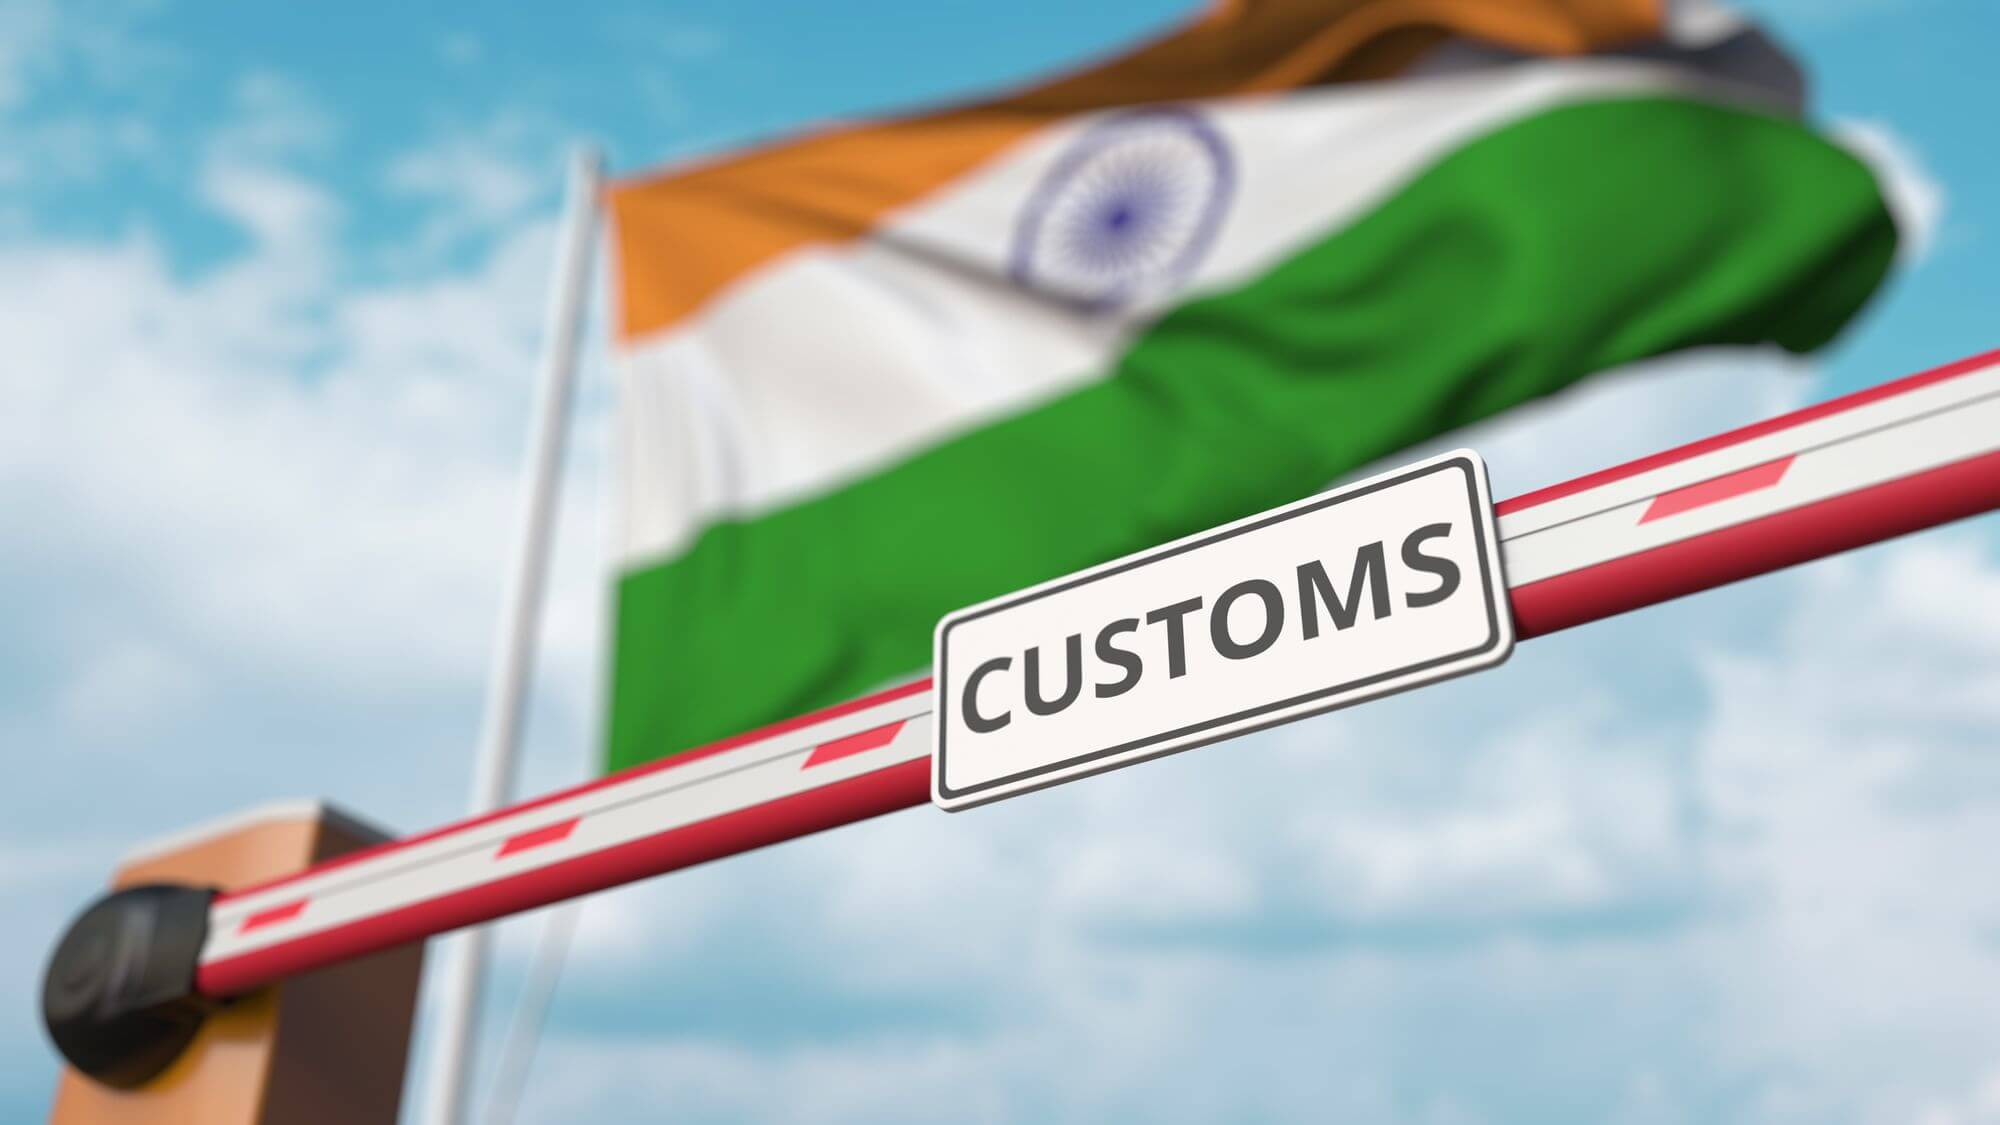 What Percentage is the Customs Tax in India?